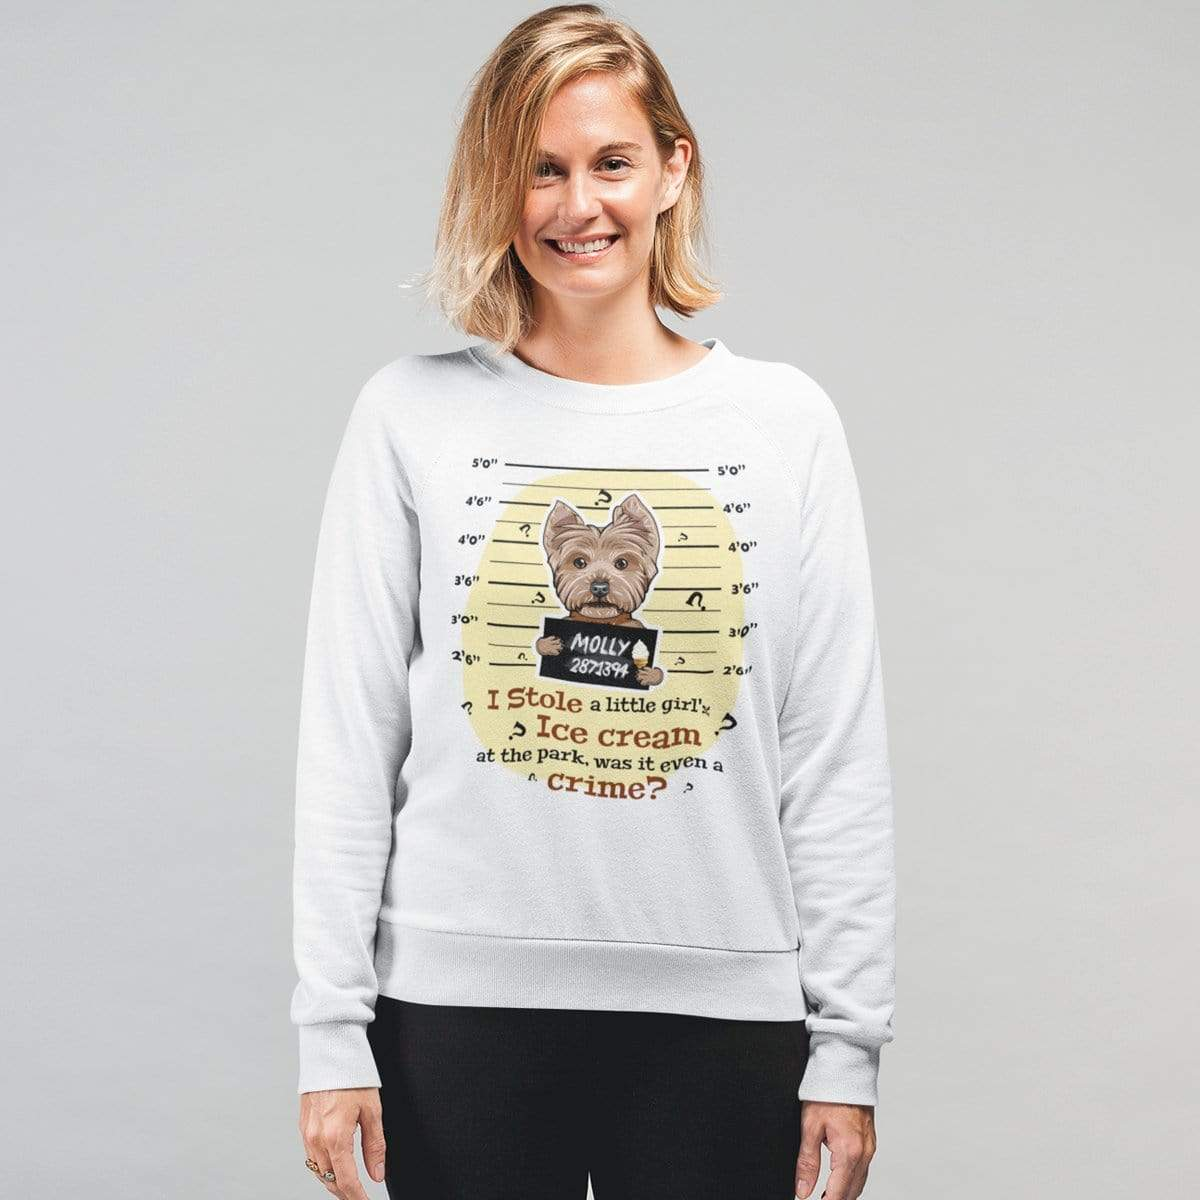 Personalized Dog Mom Gifts By Pupnpaws Cotton Sweatshirt White / S I Stole A Little Girls Ice Cream... Customized Sweatshirt For Dog Lovers